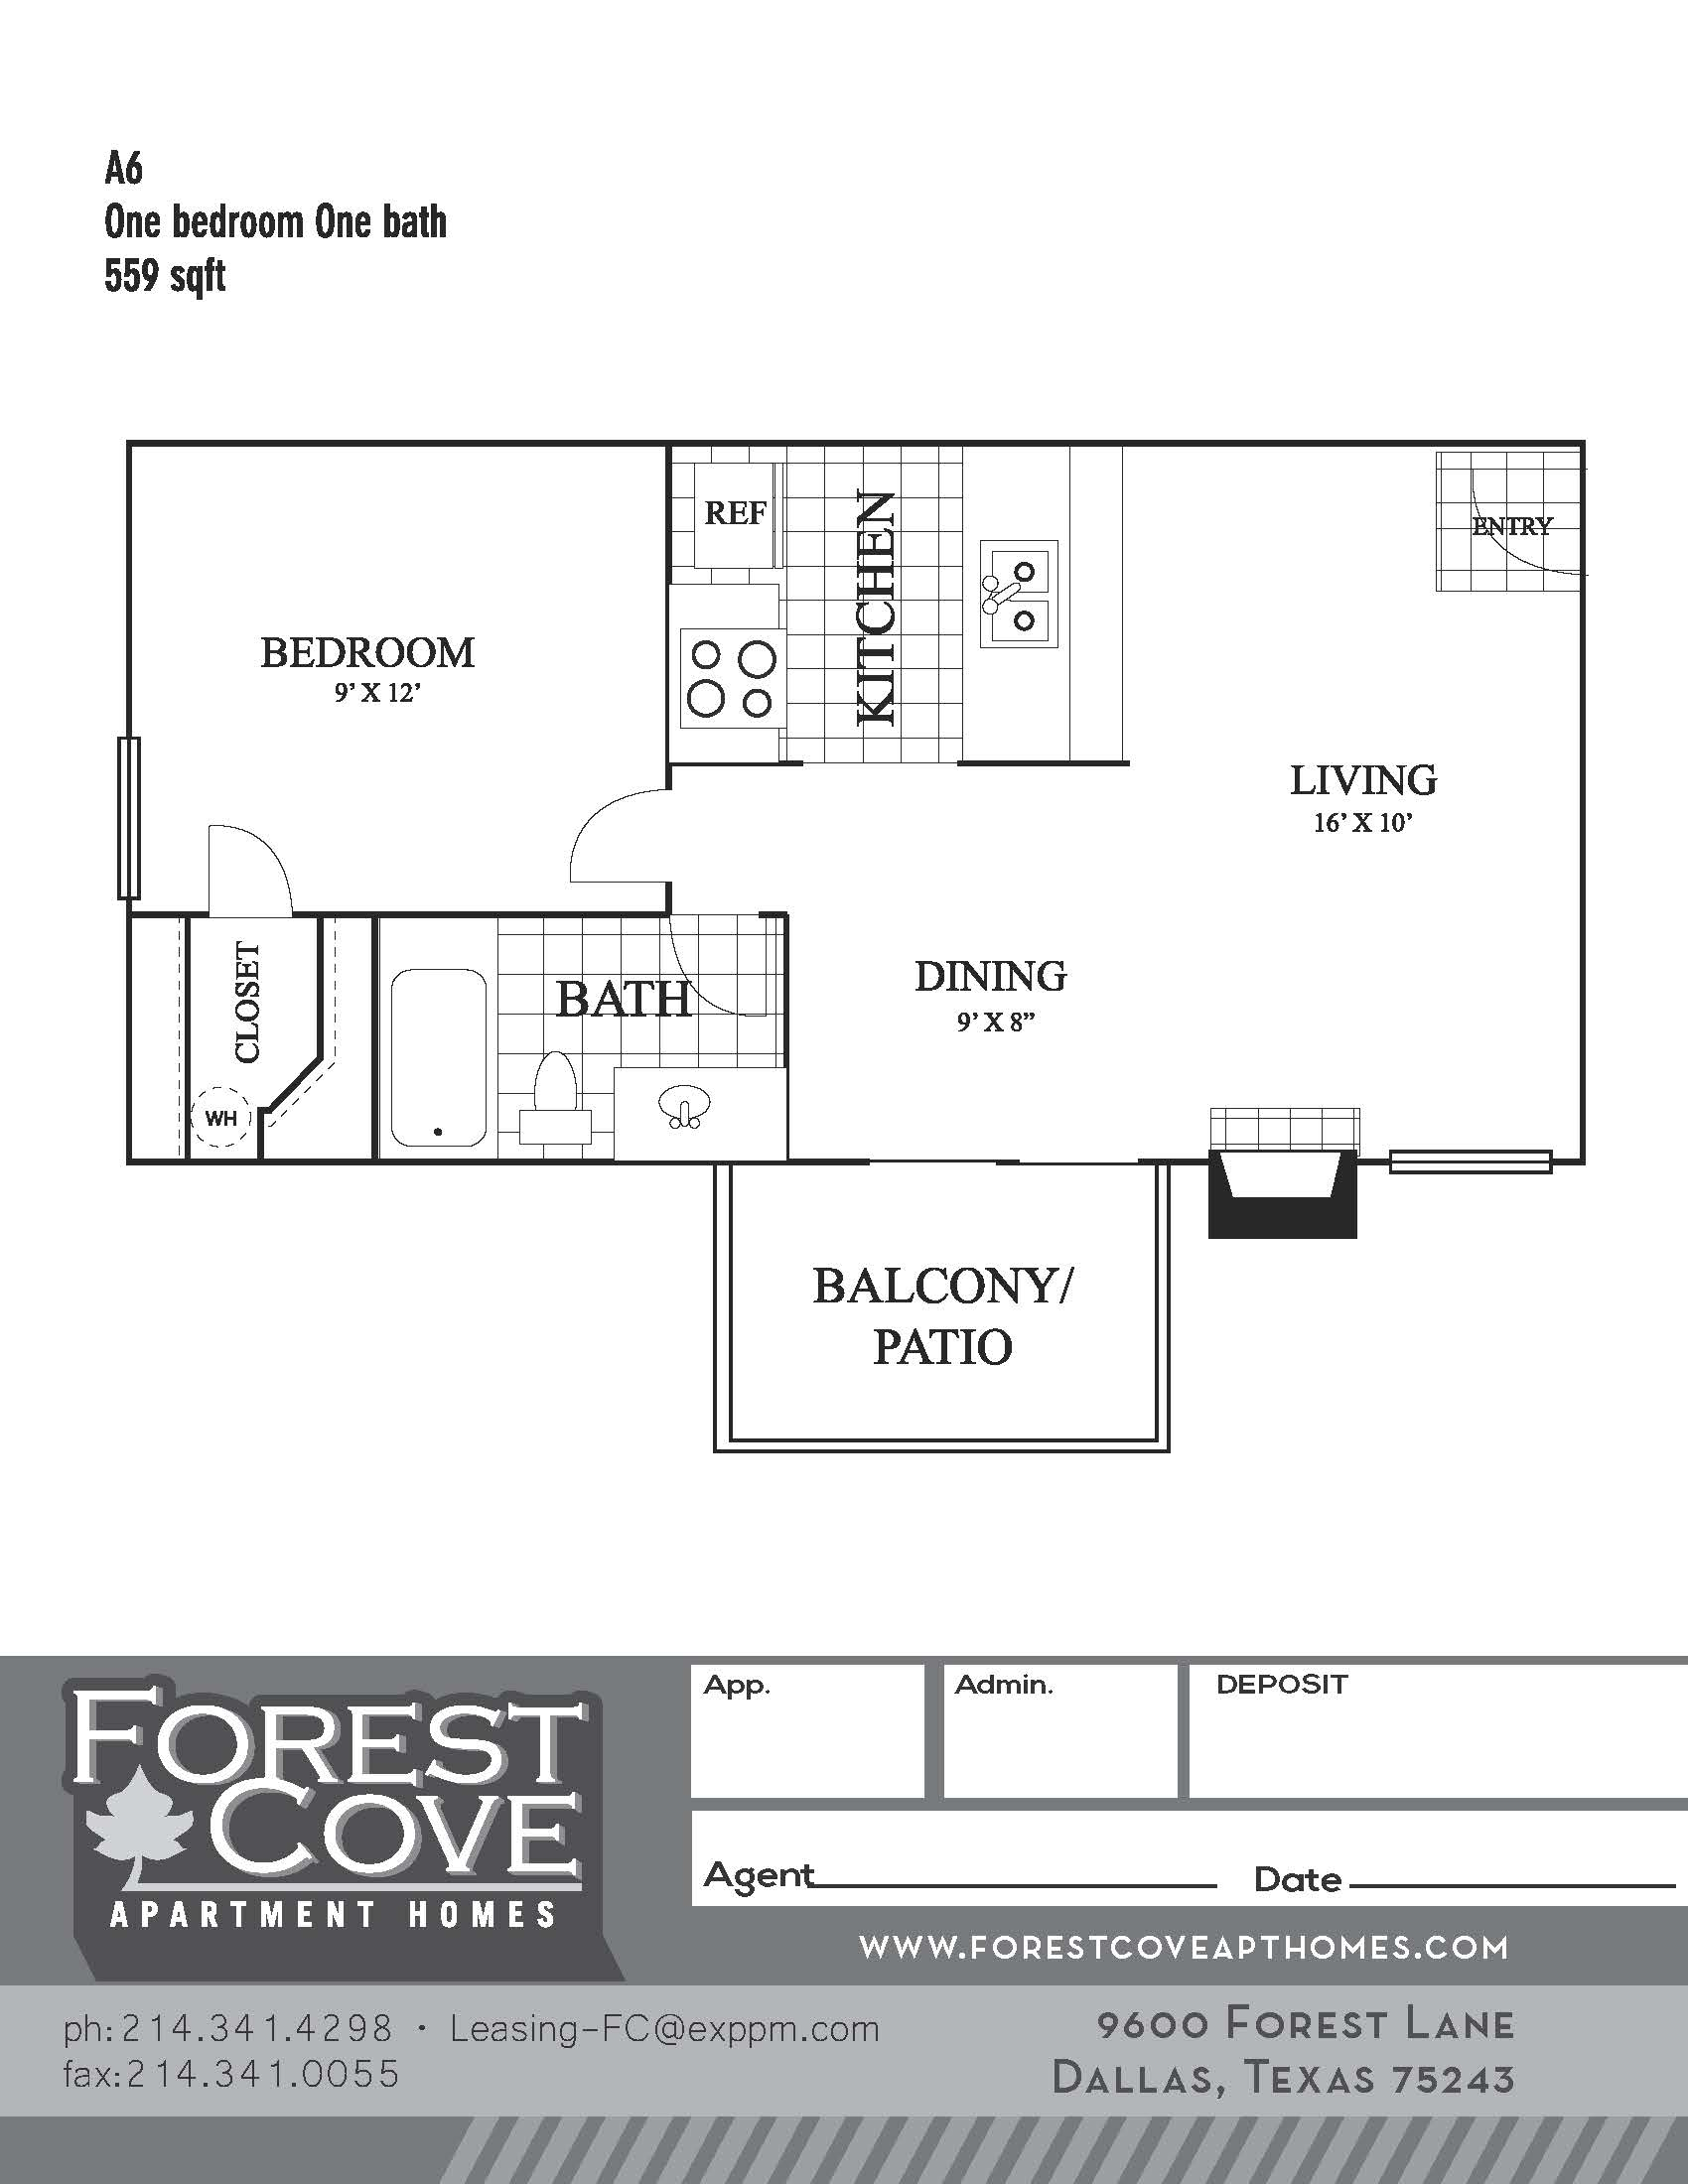 Forest Cove Apartments - Floorplan - A6